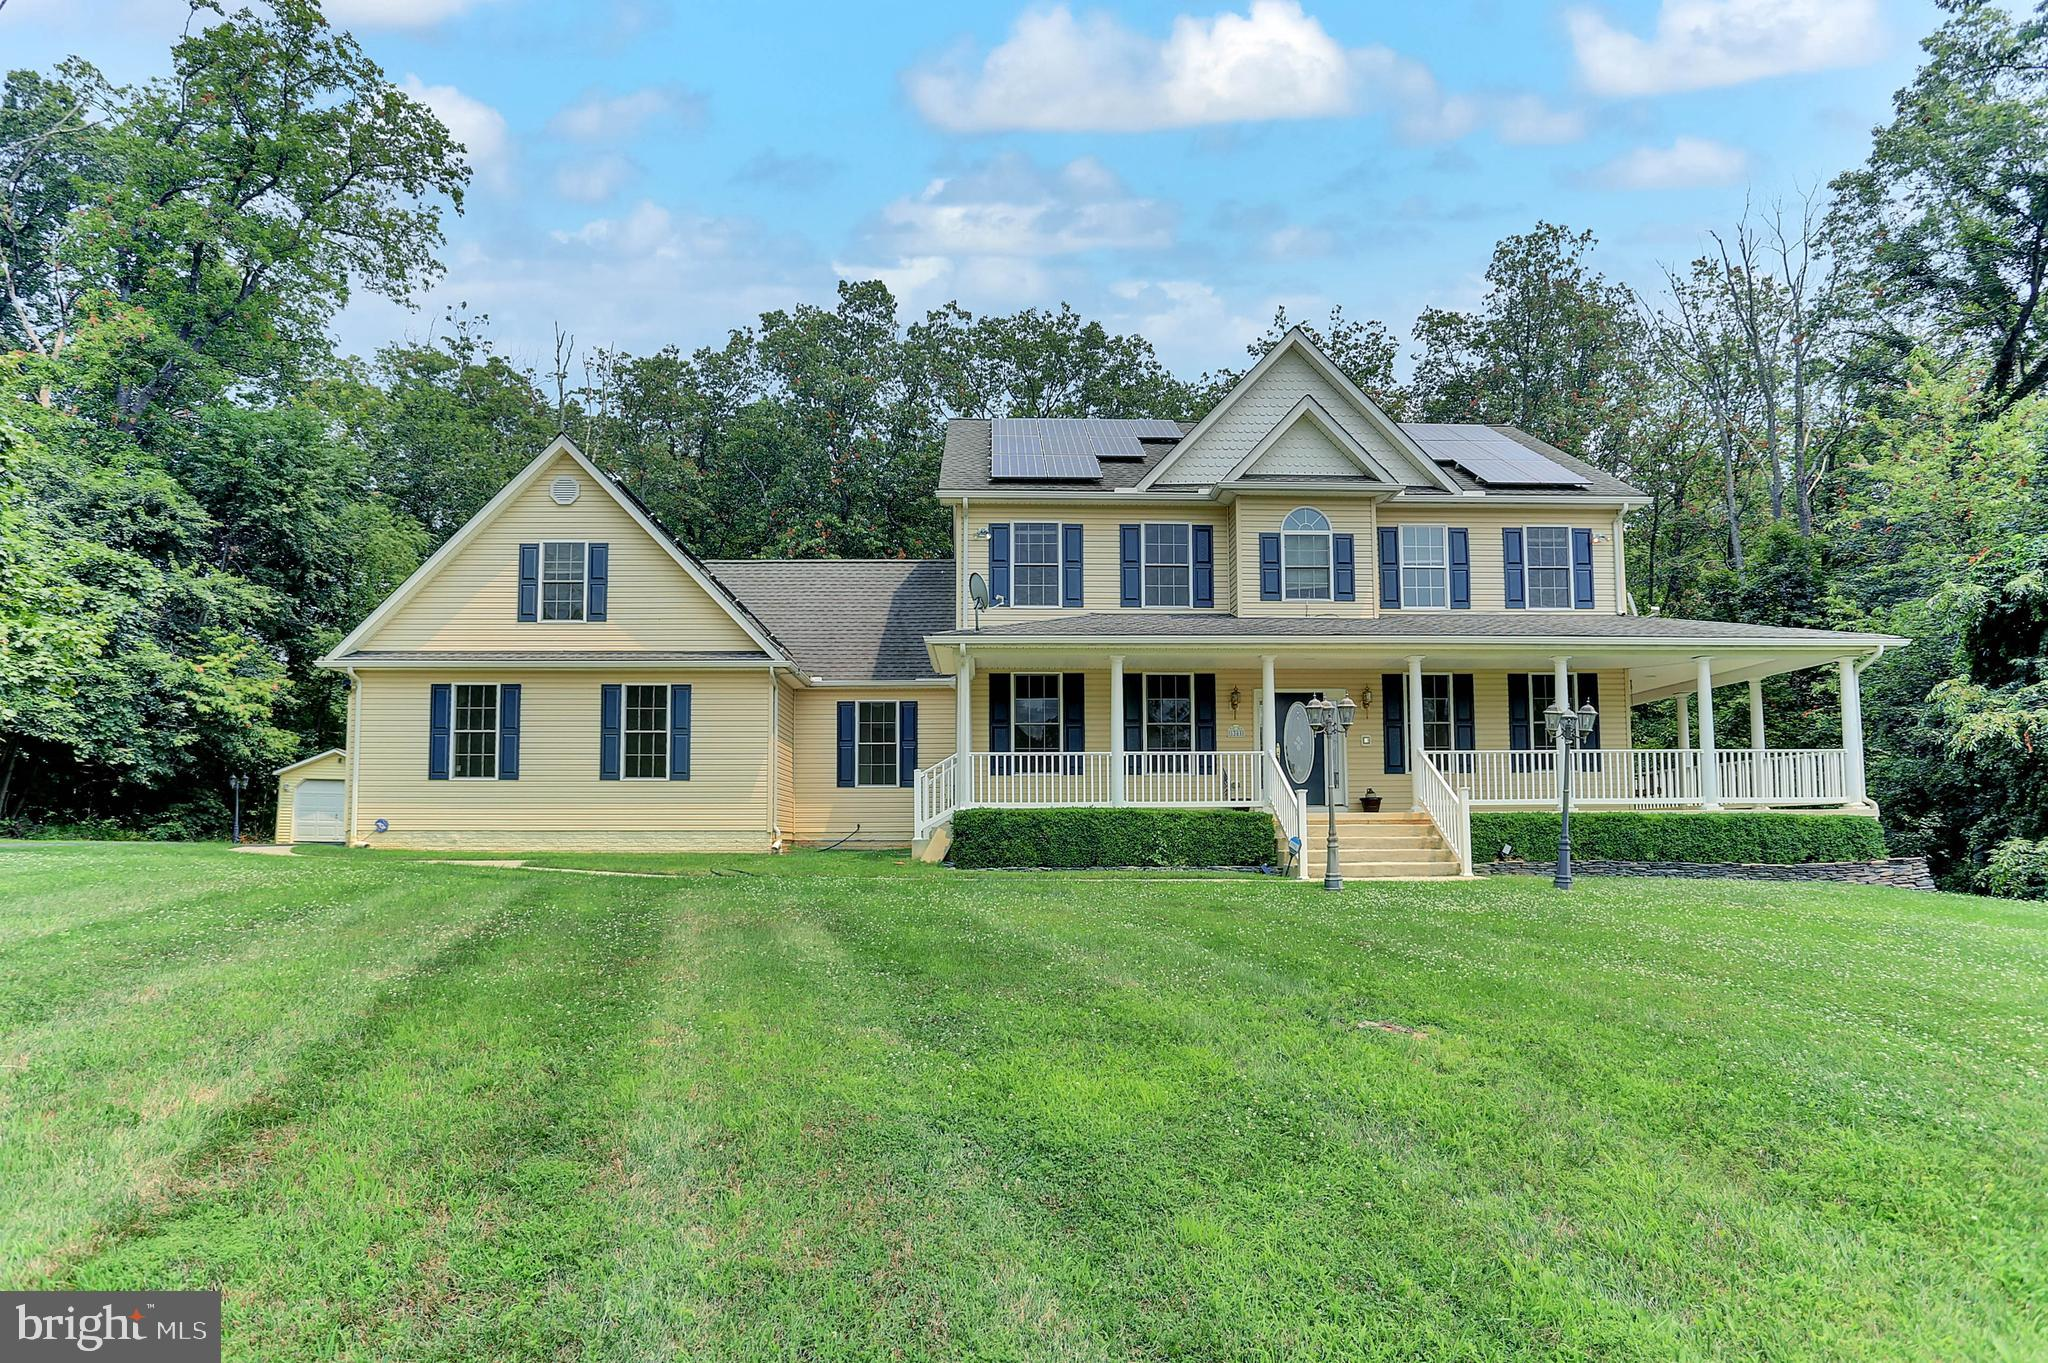 Take a look at this amazing opportunity to own this 6 bedroom, 2 full bath & 2 half bath home sittin